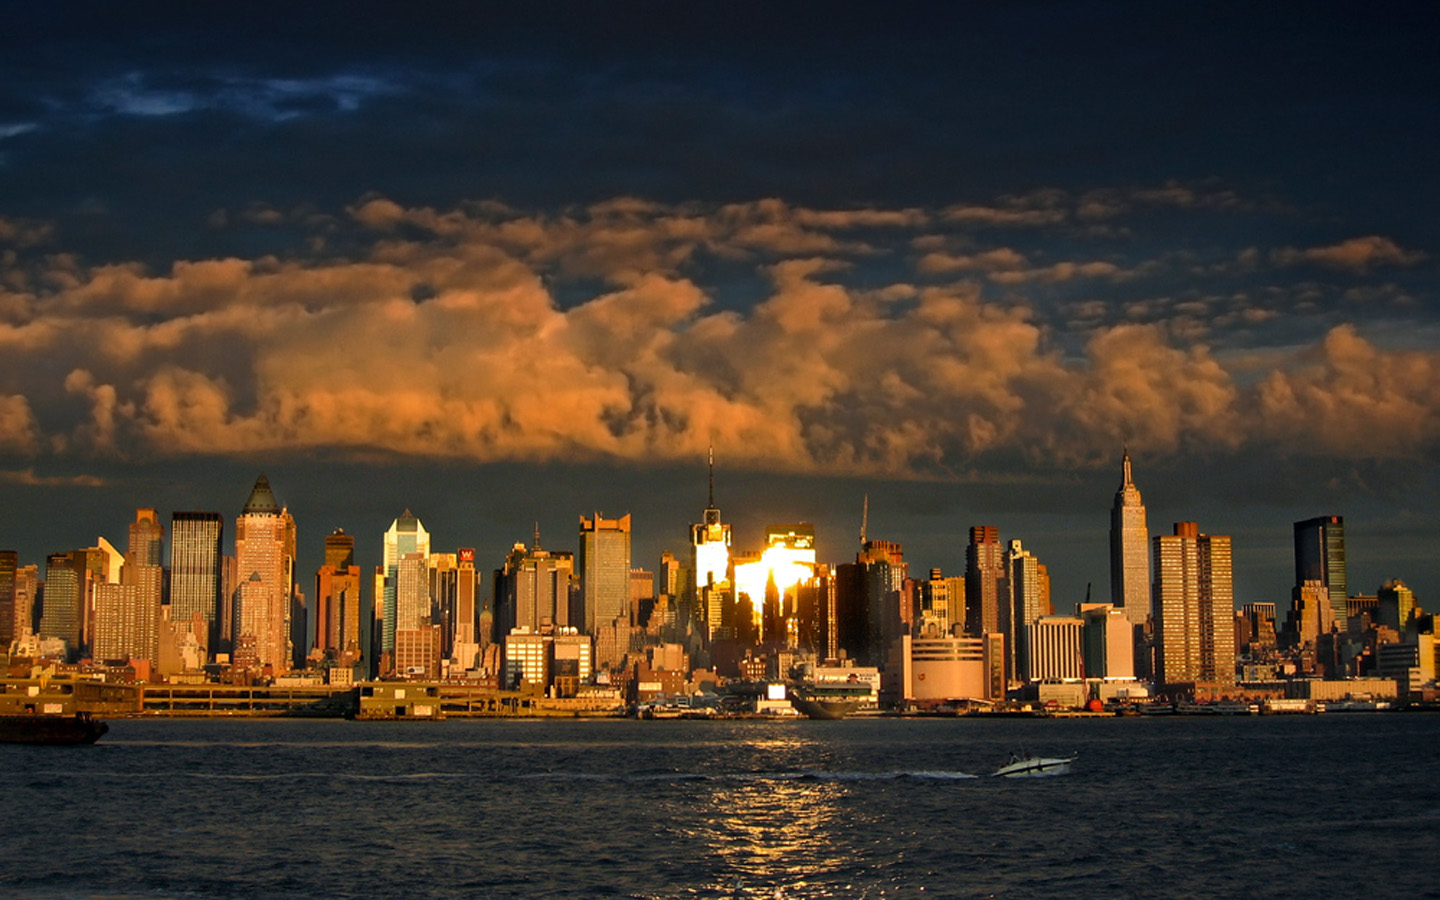 New York City Skyline At Night Wallpaper Space Wallpapers In